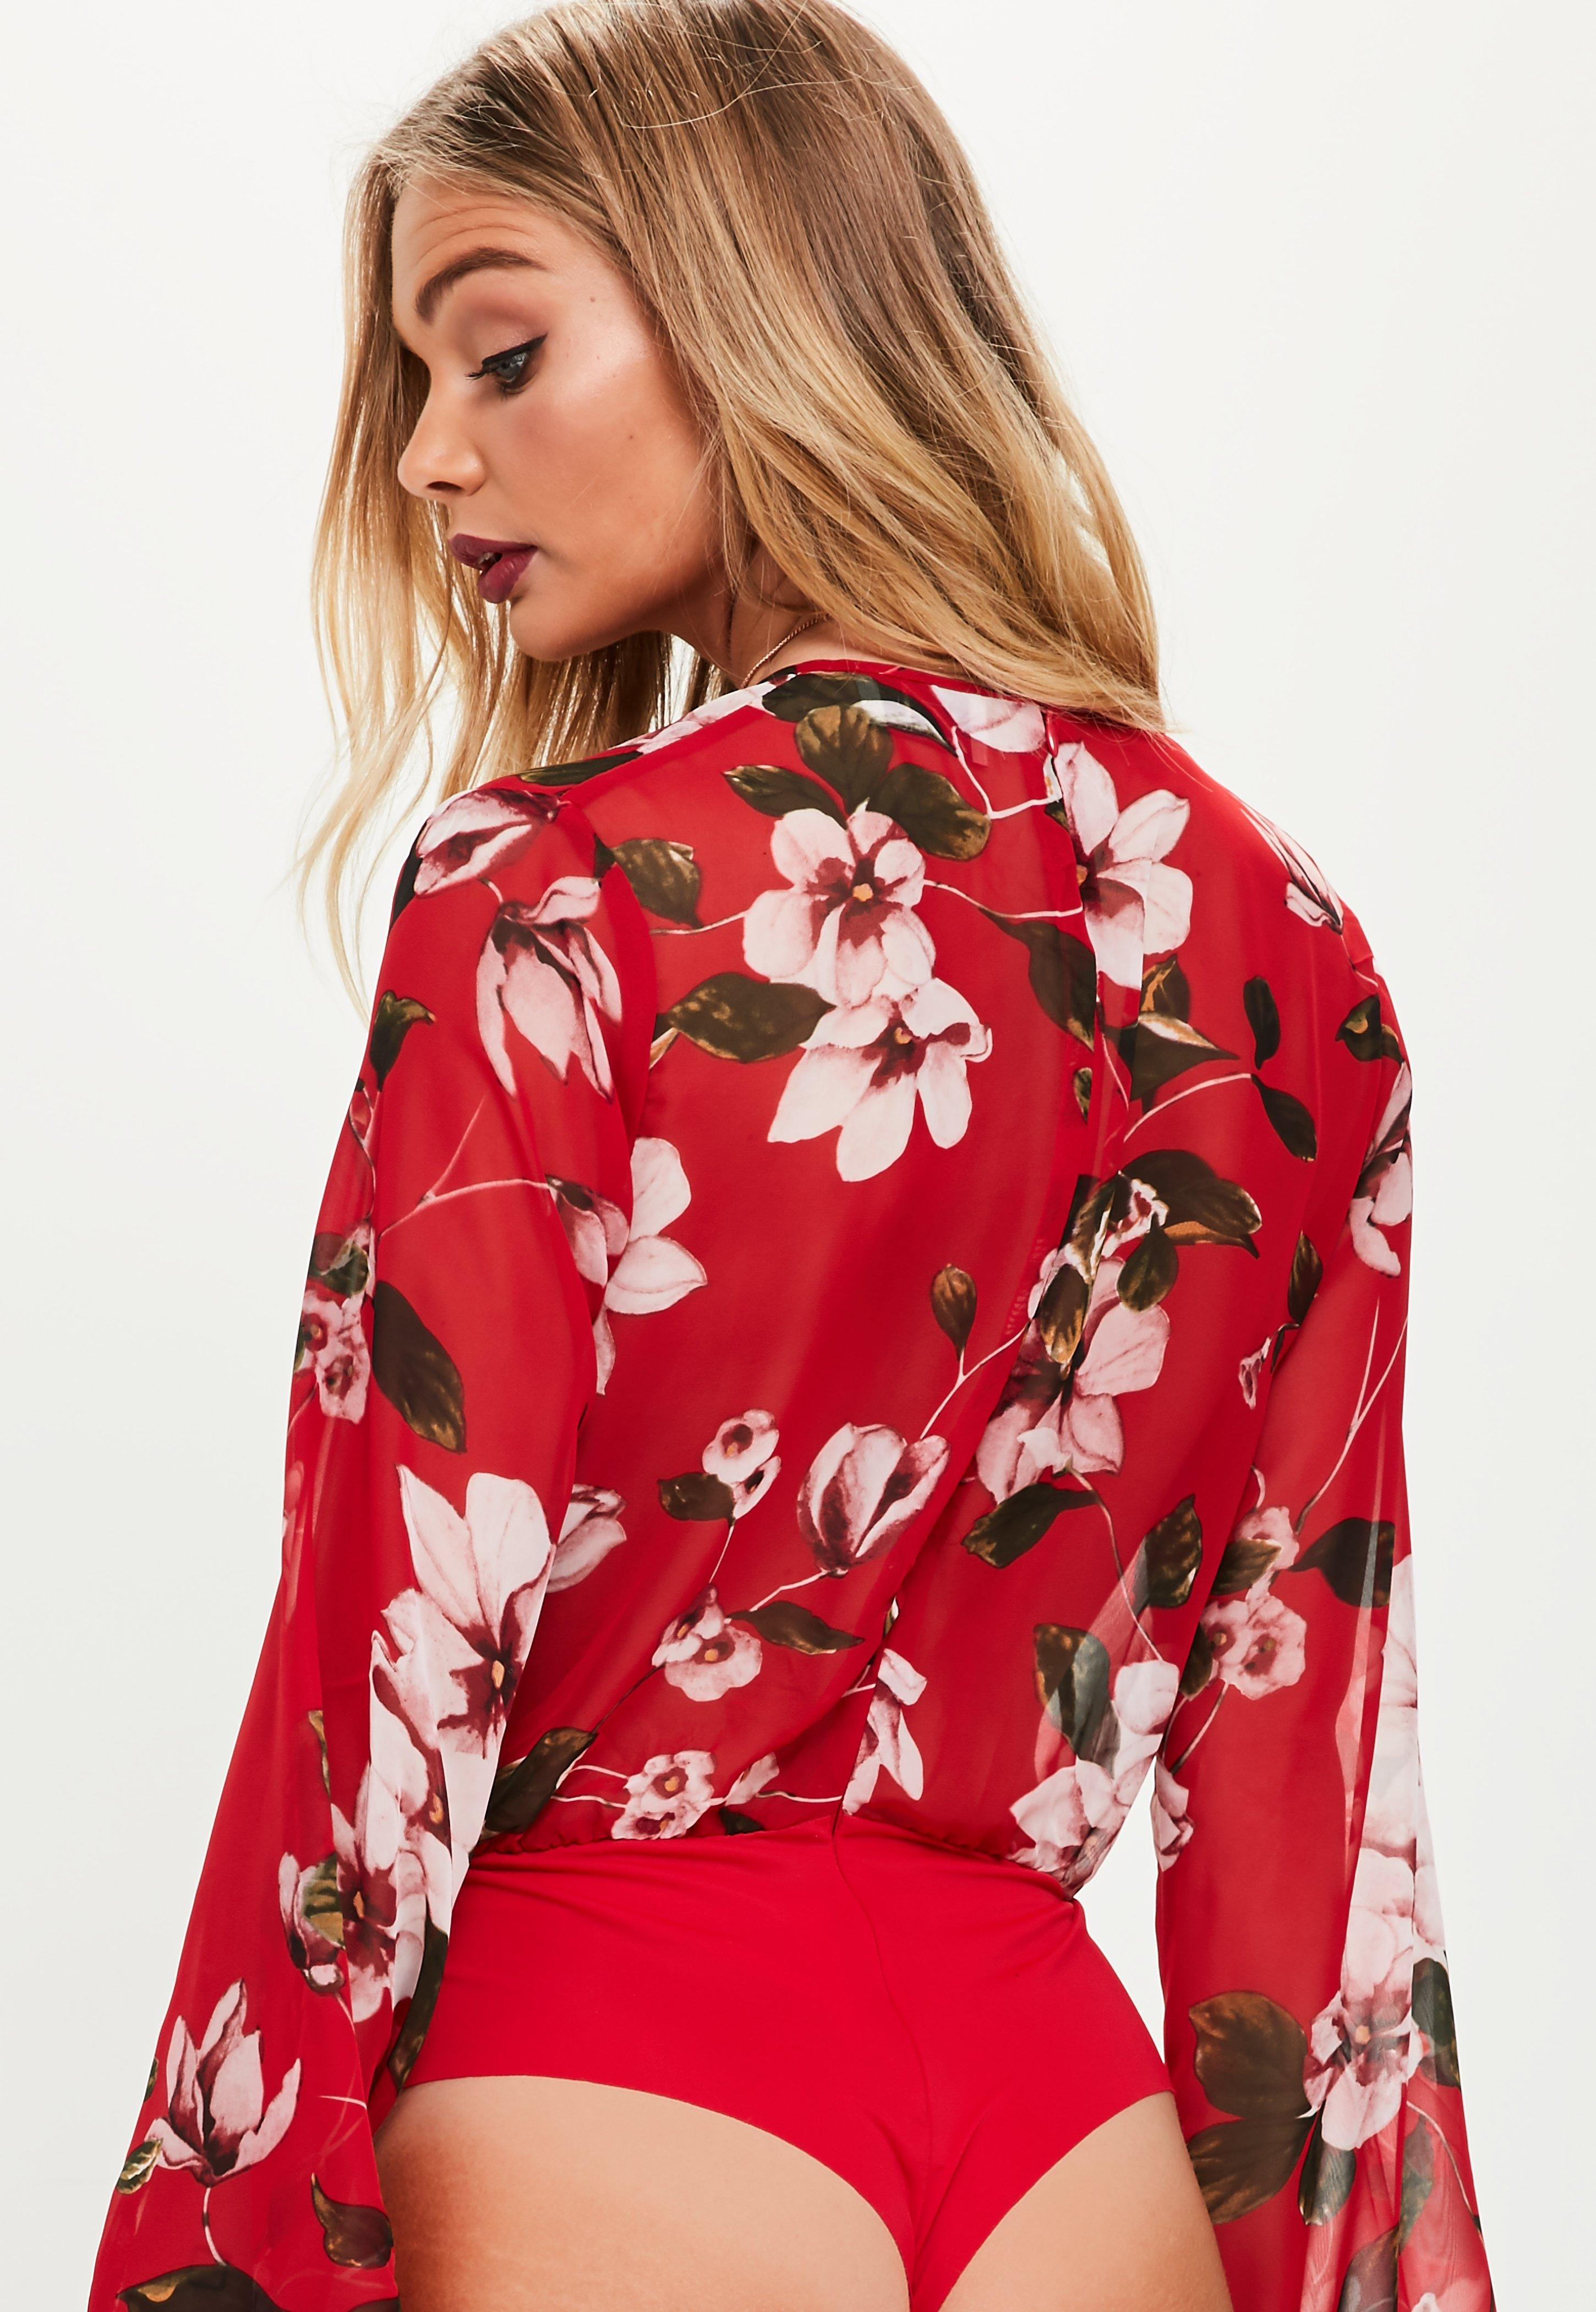 Lyst - Missguided Red Floral Print Plunge Bodysuit in Red c98014e57